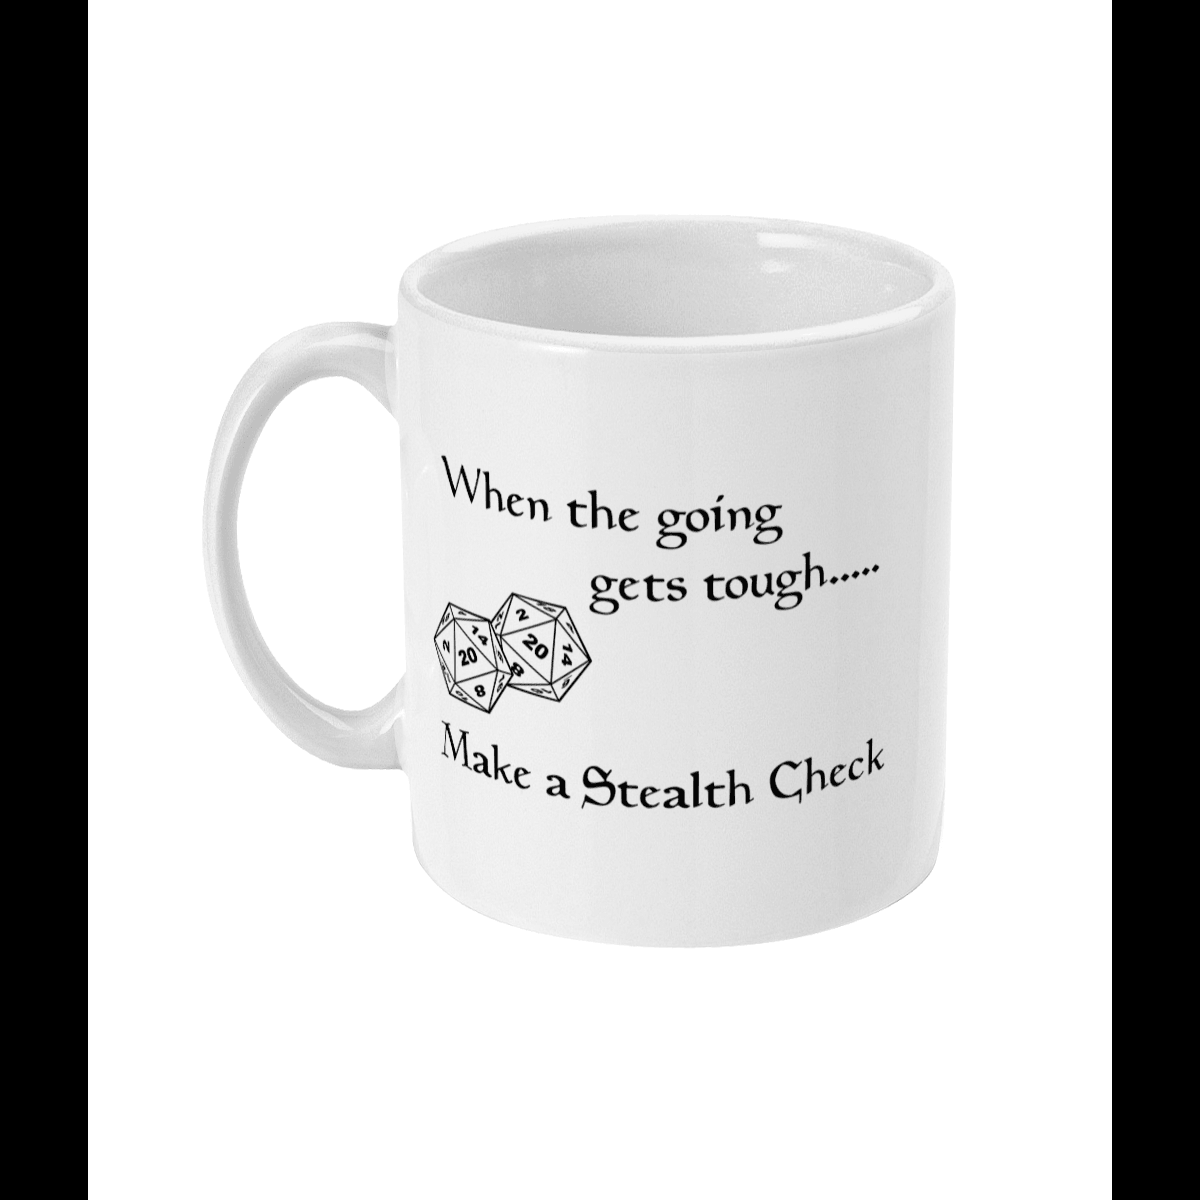 Red Berry Crafts Ltd:Make a Stealth Check 11oz Ceramic Mug